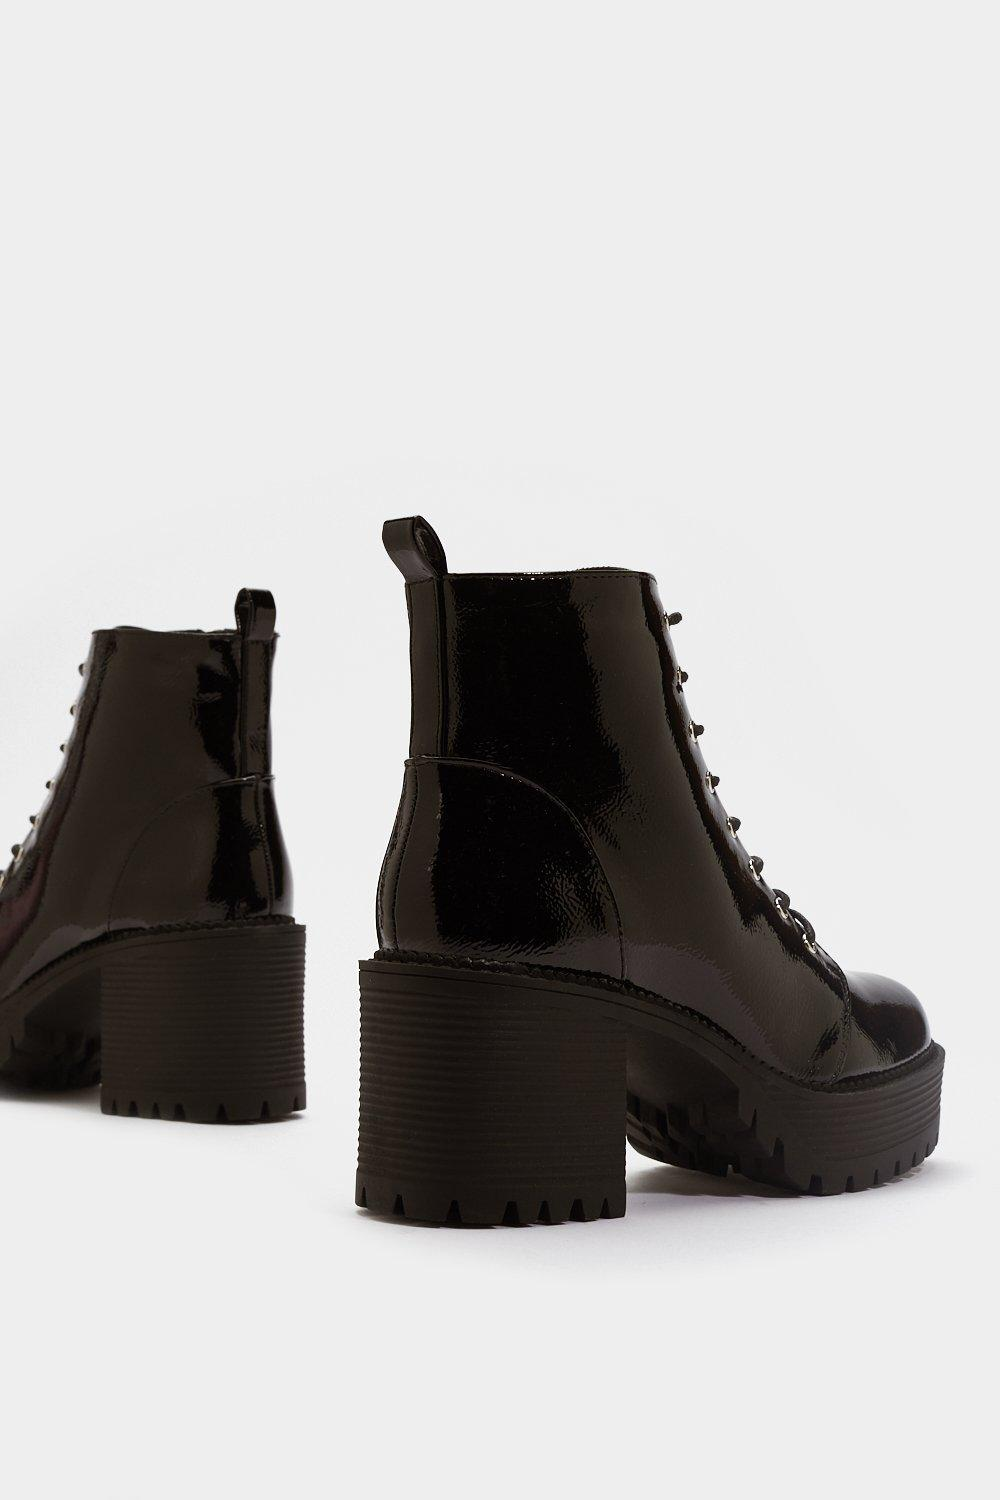 32edd9f9cdd Stand Firm Patent Chunky Boots   Shop Clothes at Nasty Gal!